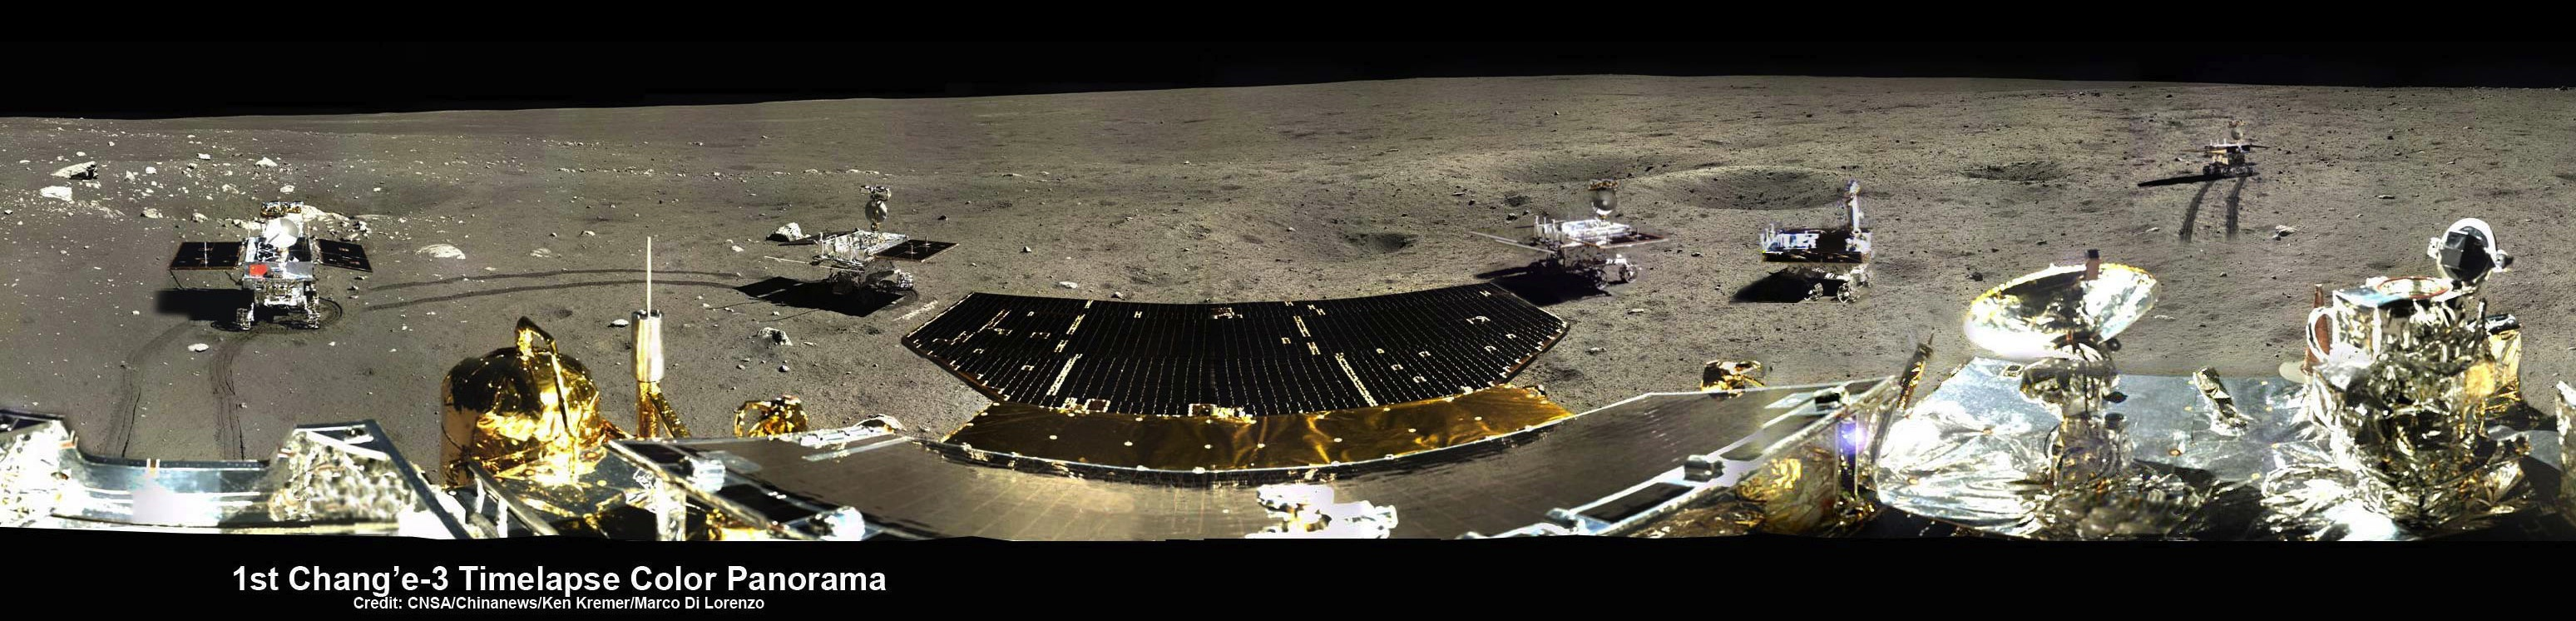 5-Position Panorama Shows Yutu Rover Movements